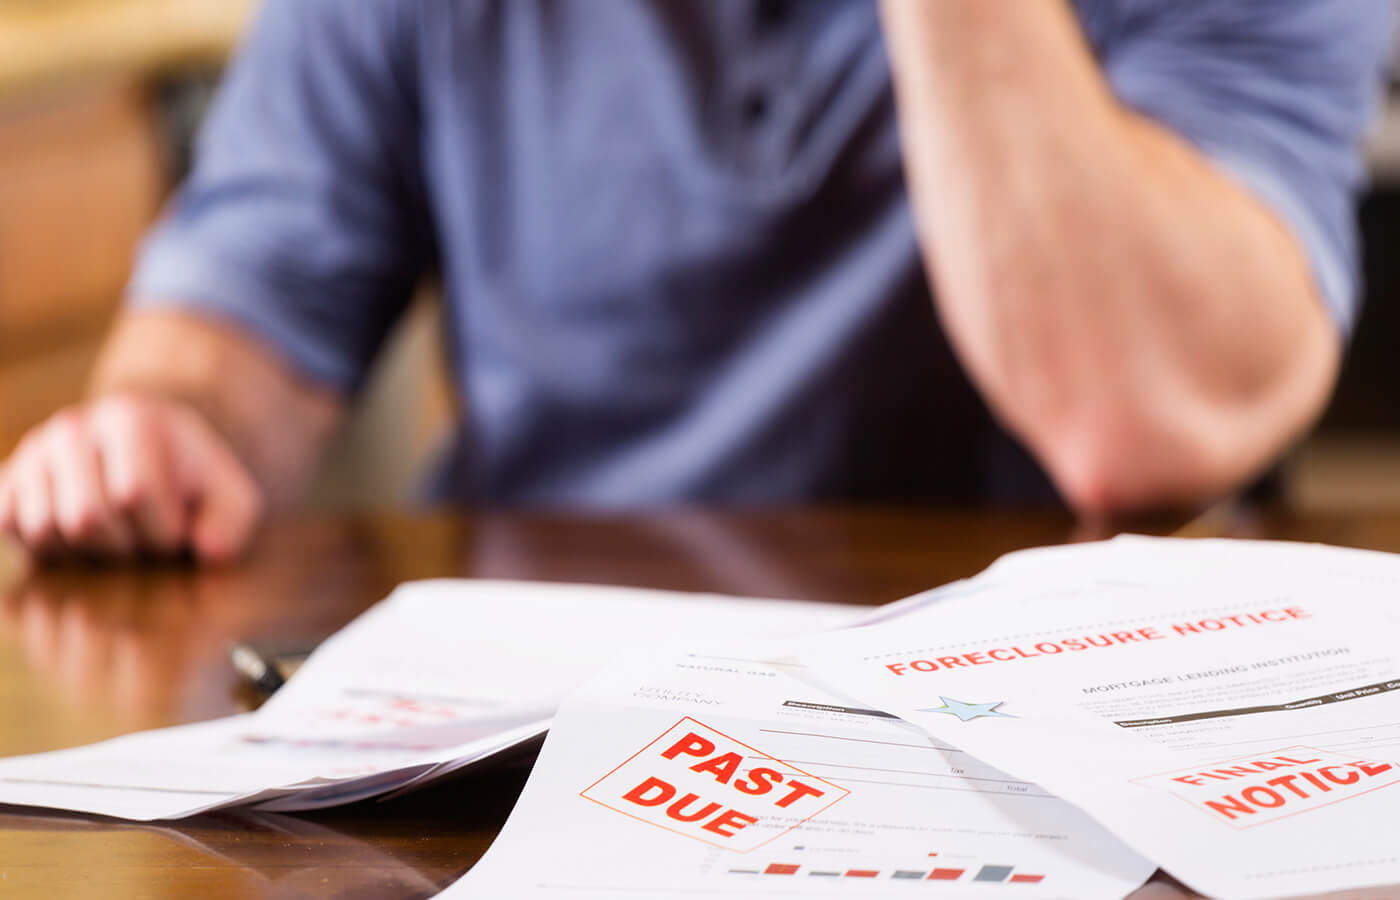 What is the seven-year mark in debt repayment?